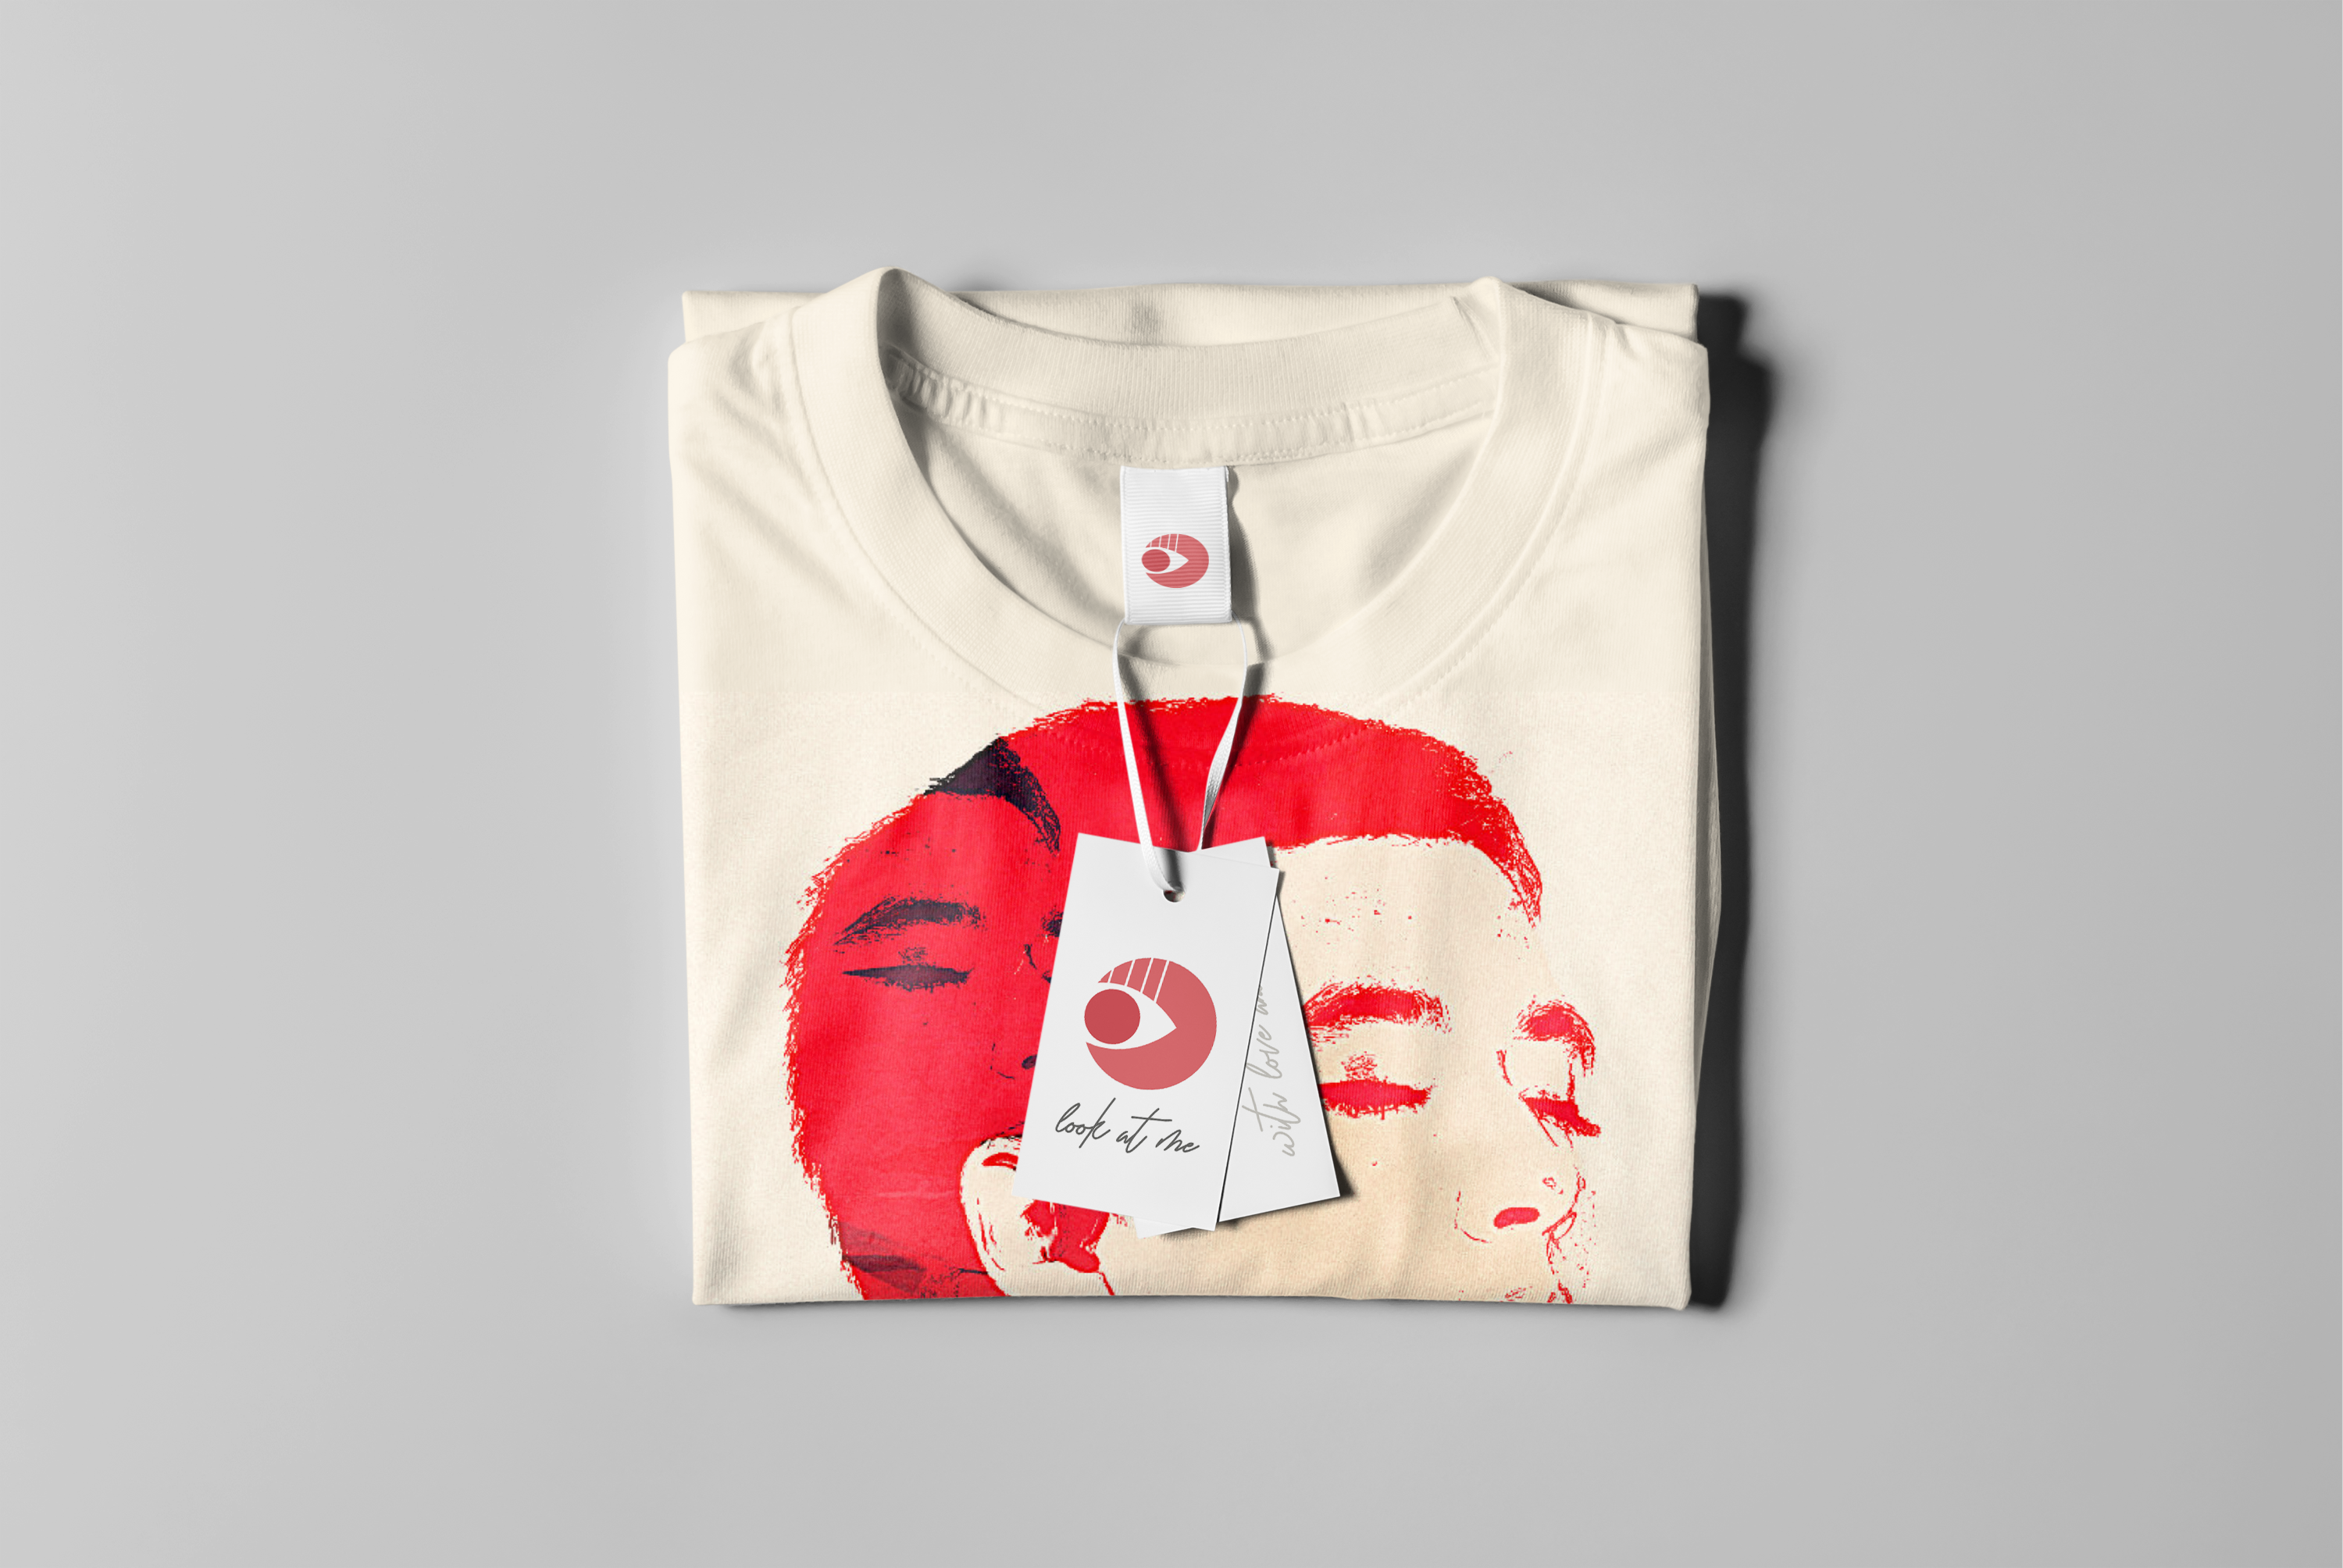 Illustration t-shirt merchandising branding